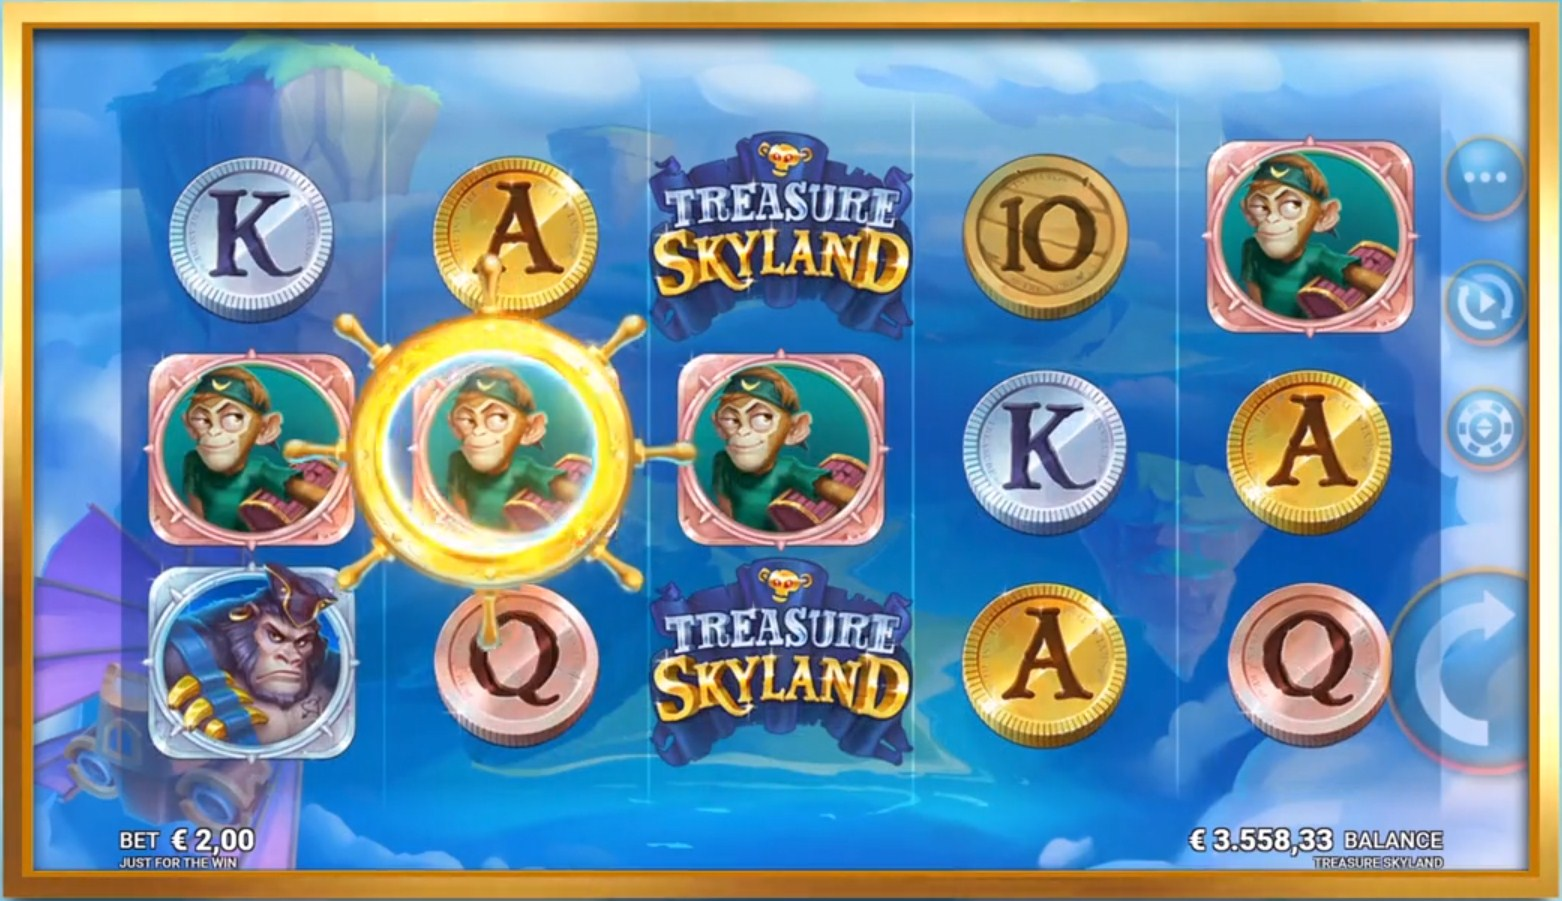 Treasure Skyland Slot Gameplay